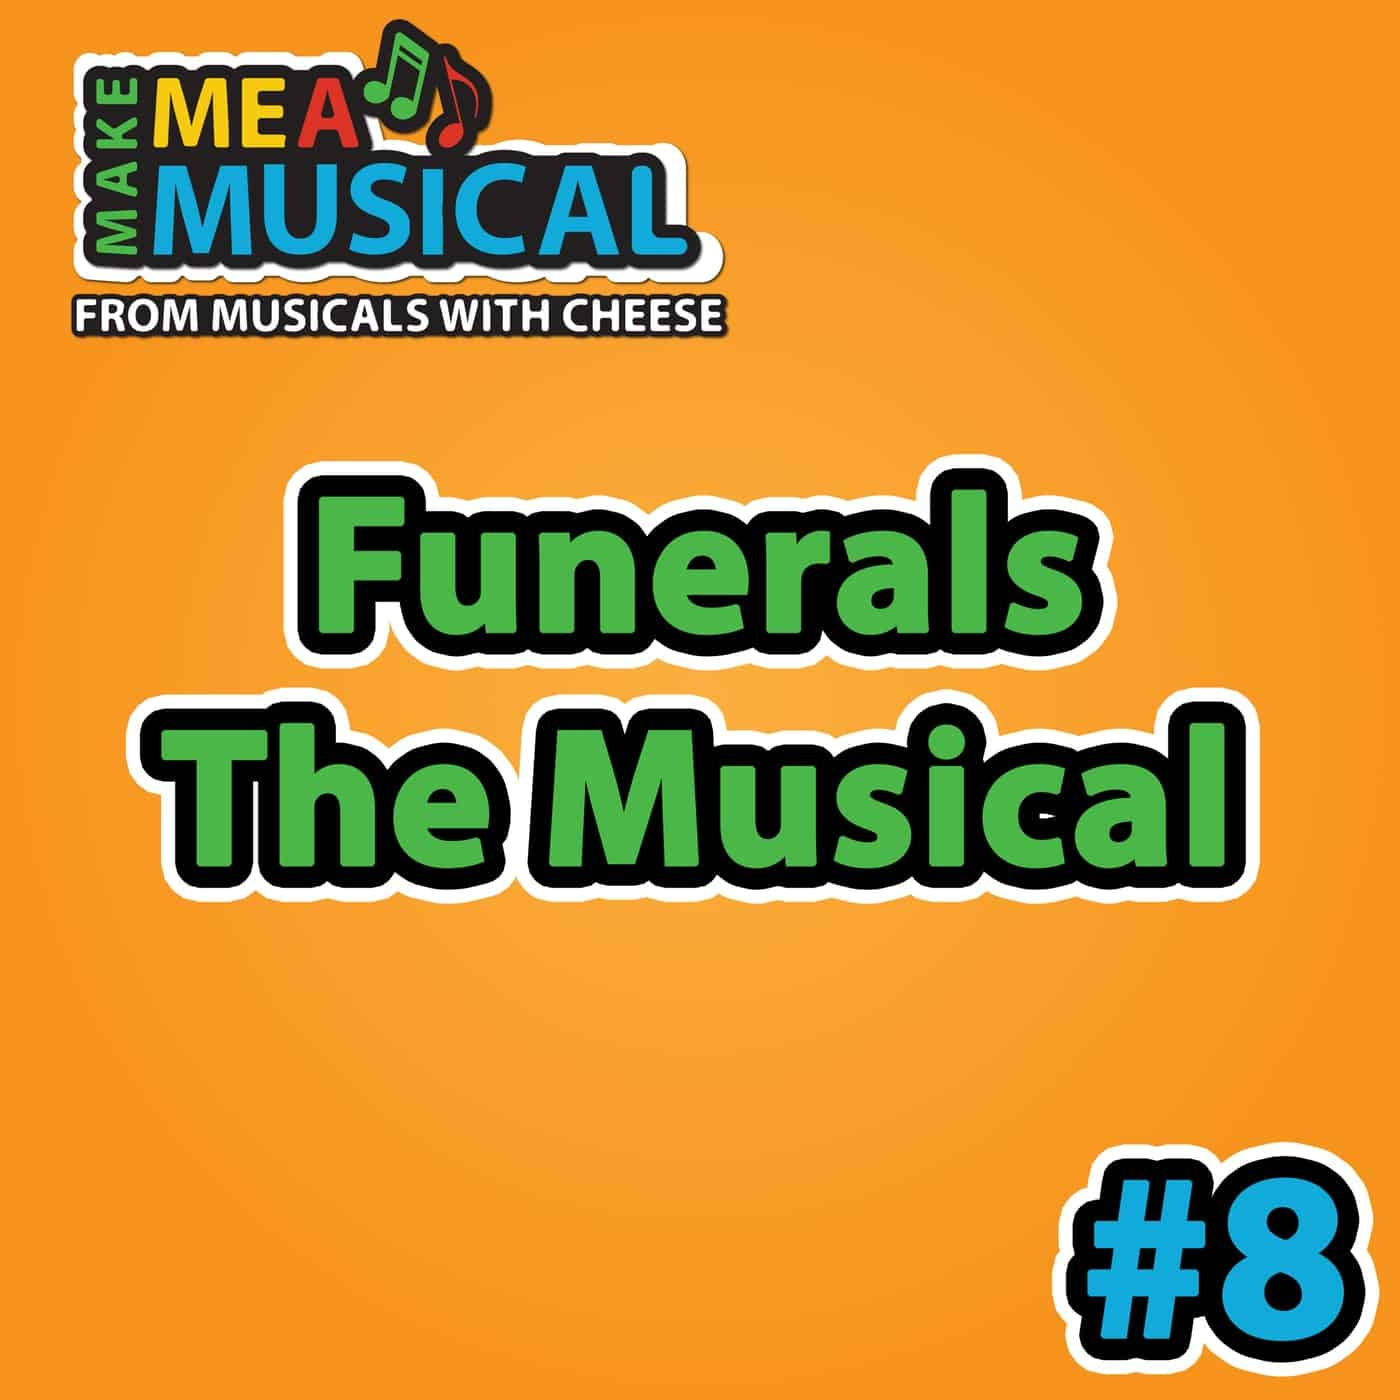 Funerals the Musical - Make me a Musical #8